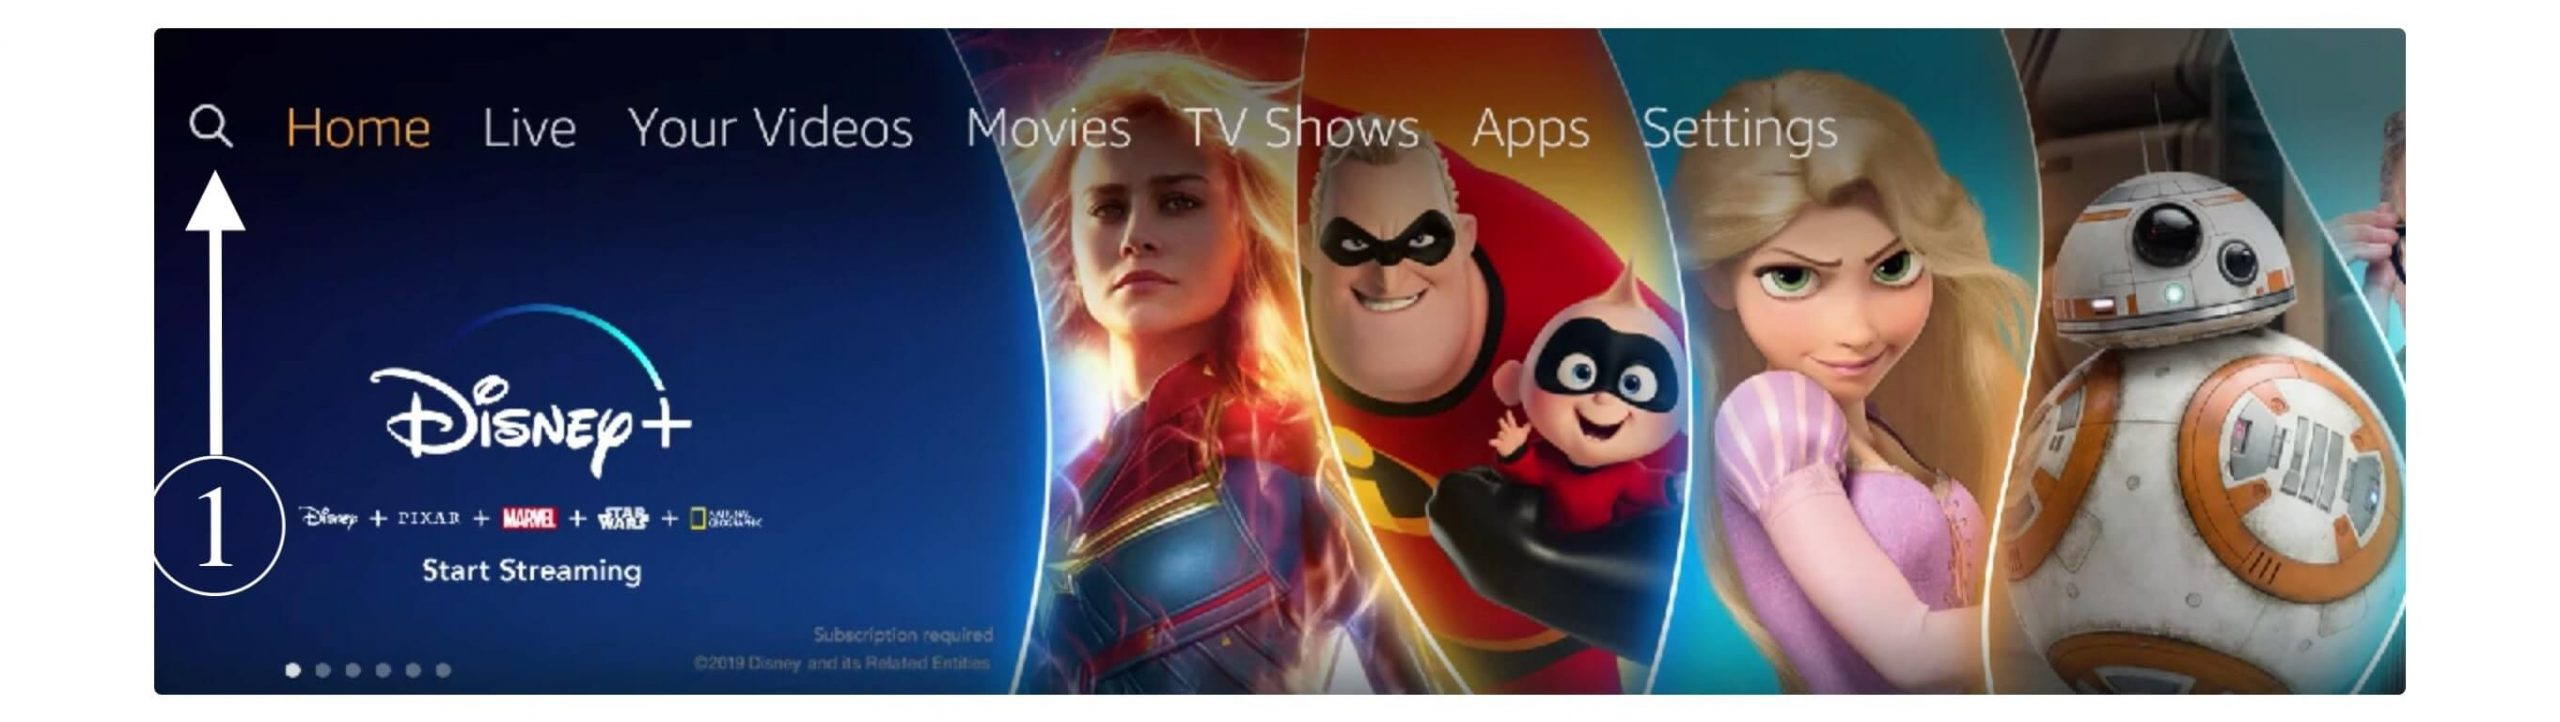 How-To-Install-Disney-Plus-On-Firestick